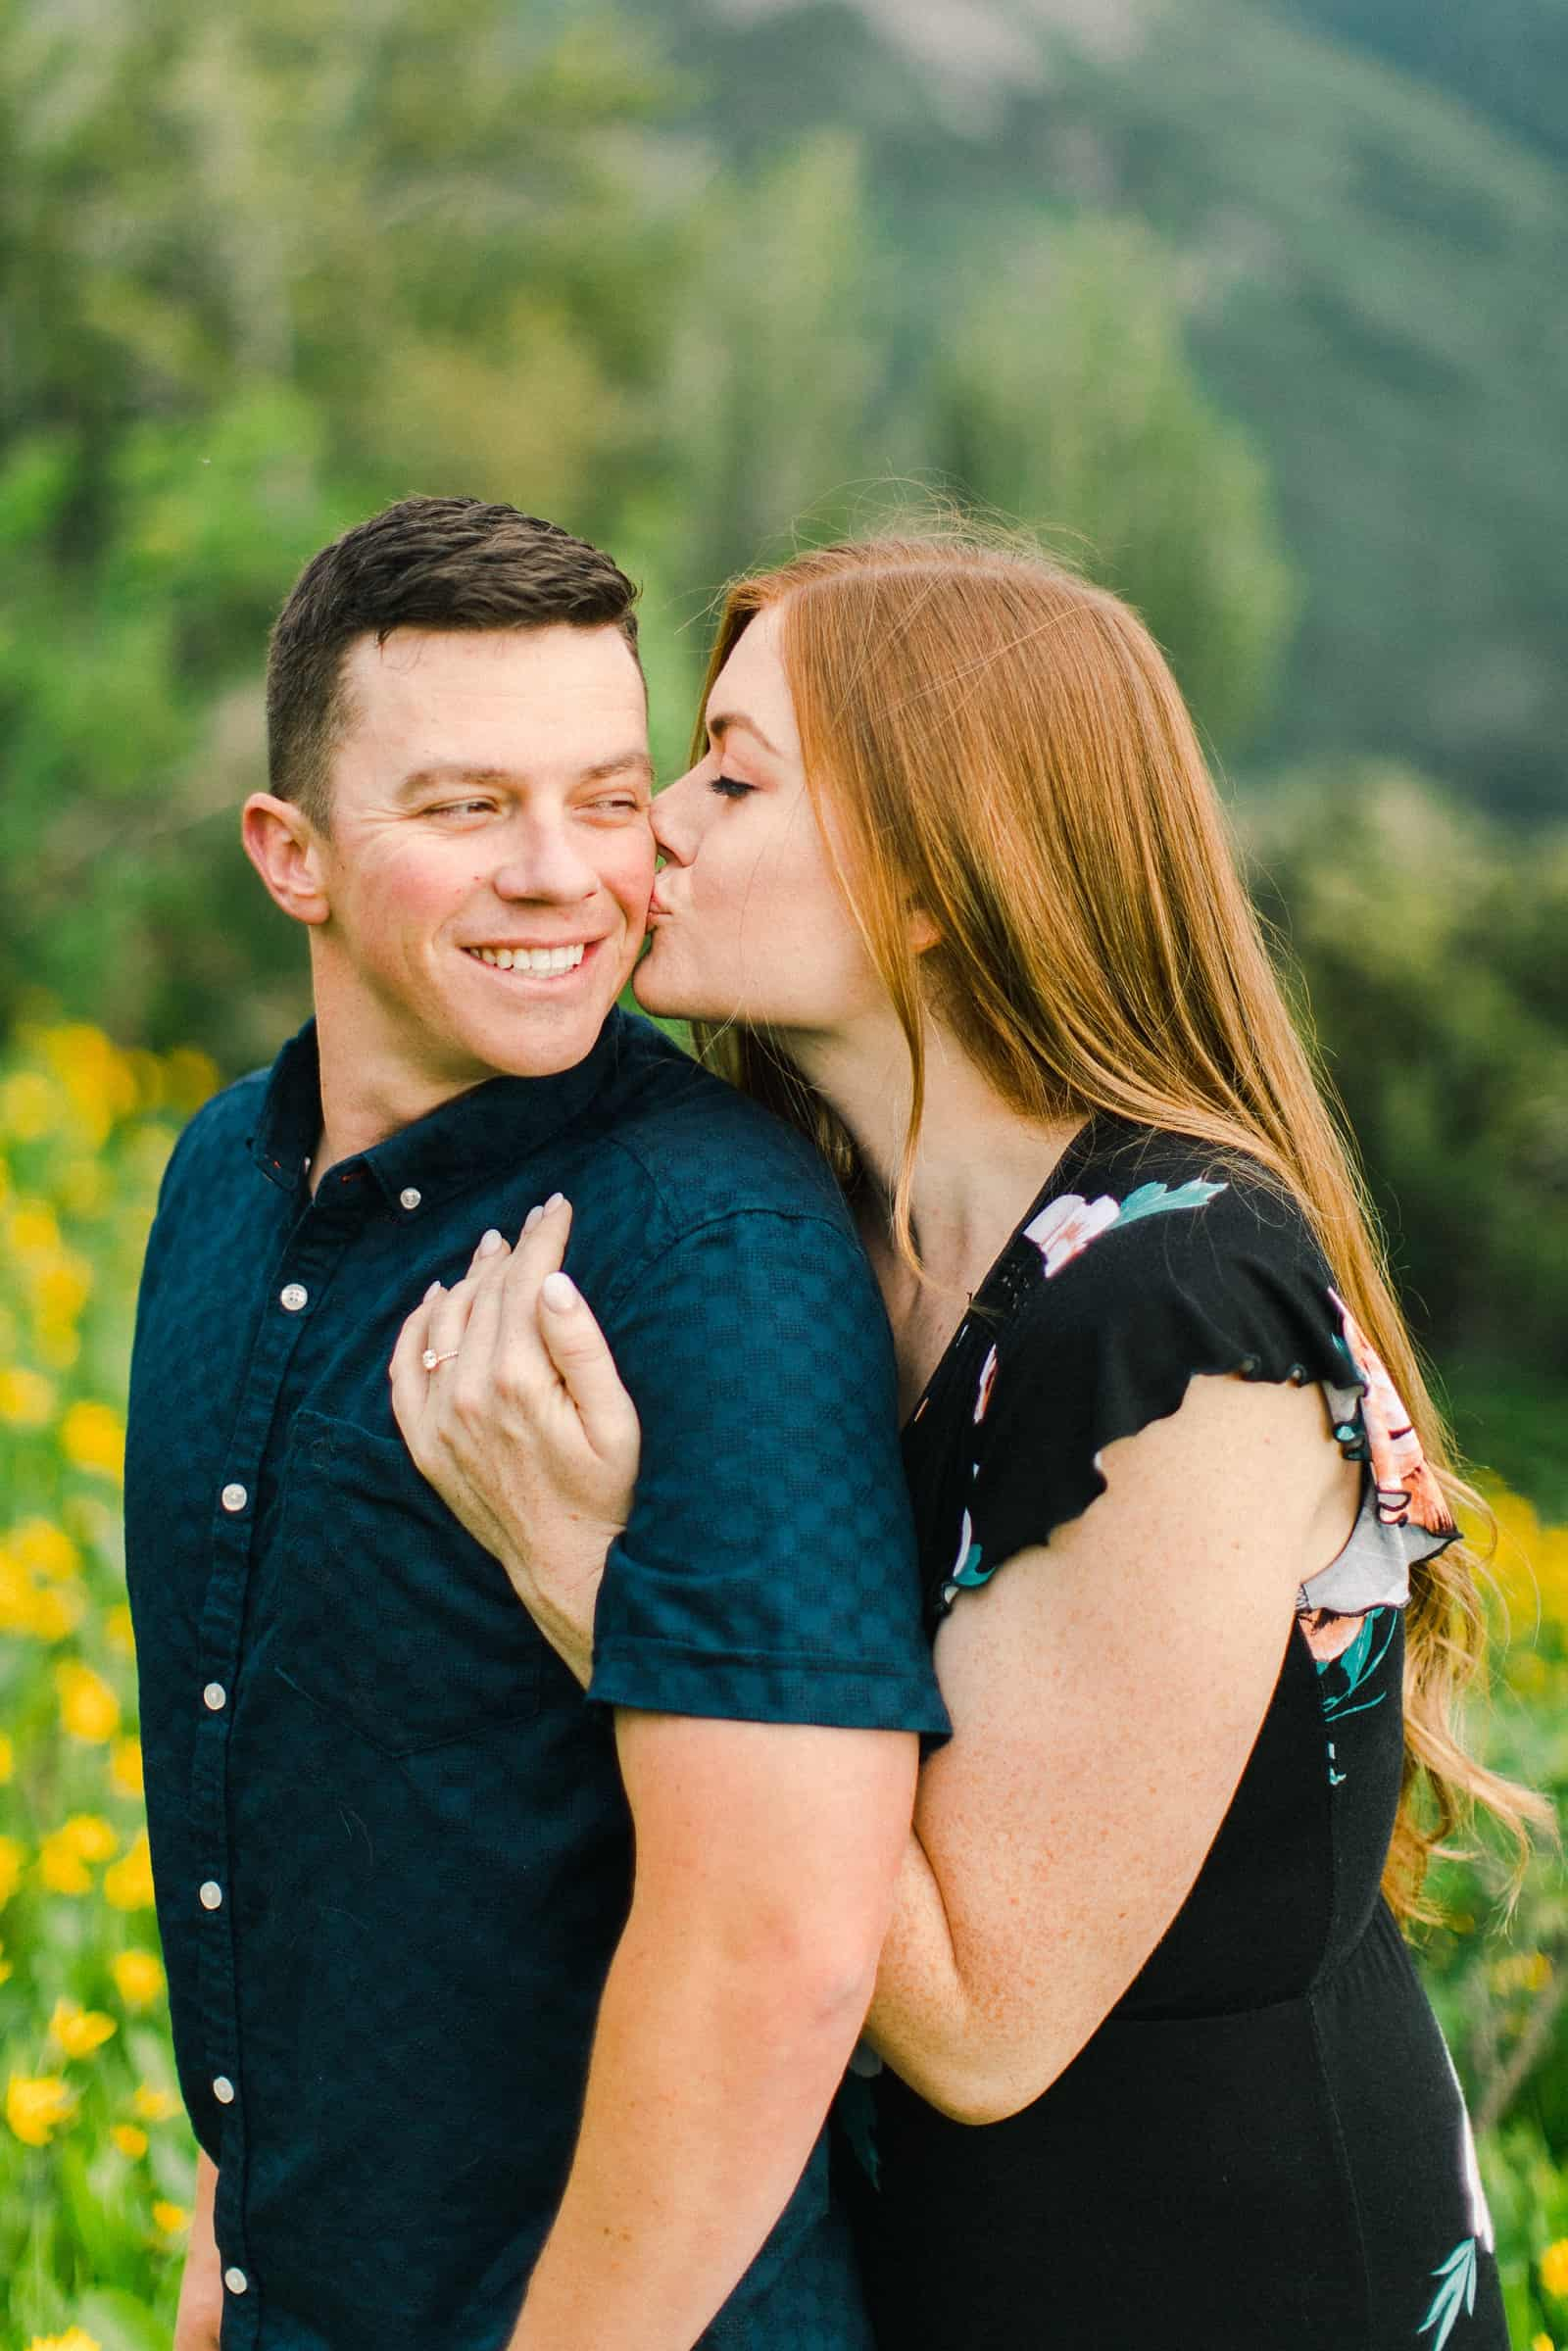 Provo Canyon wildflowers field engagement session, Utah wedding photography, engaged couple kissing in yellow flowers and mountains